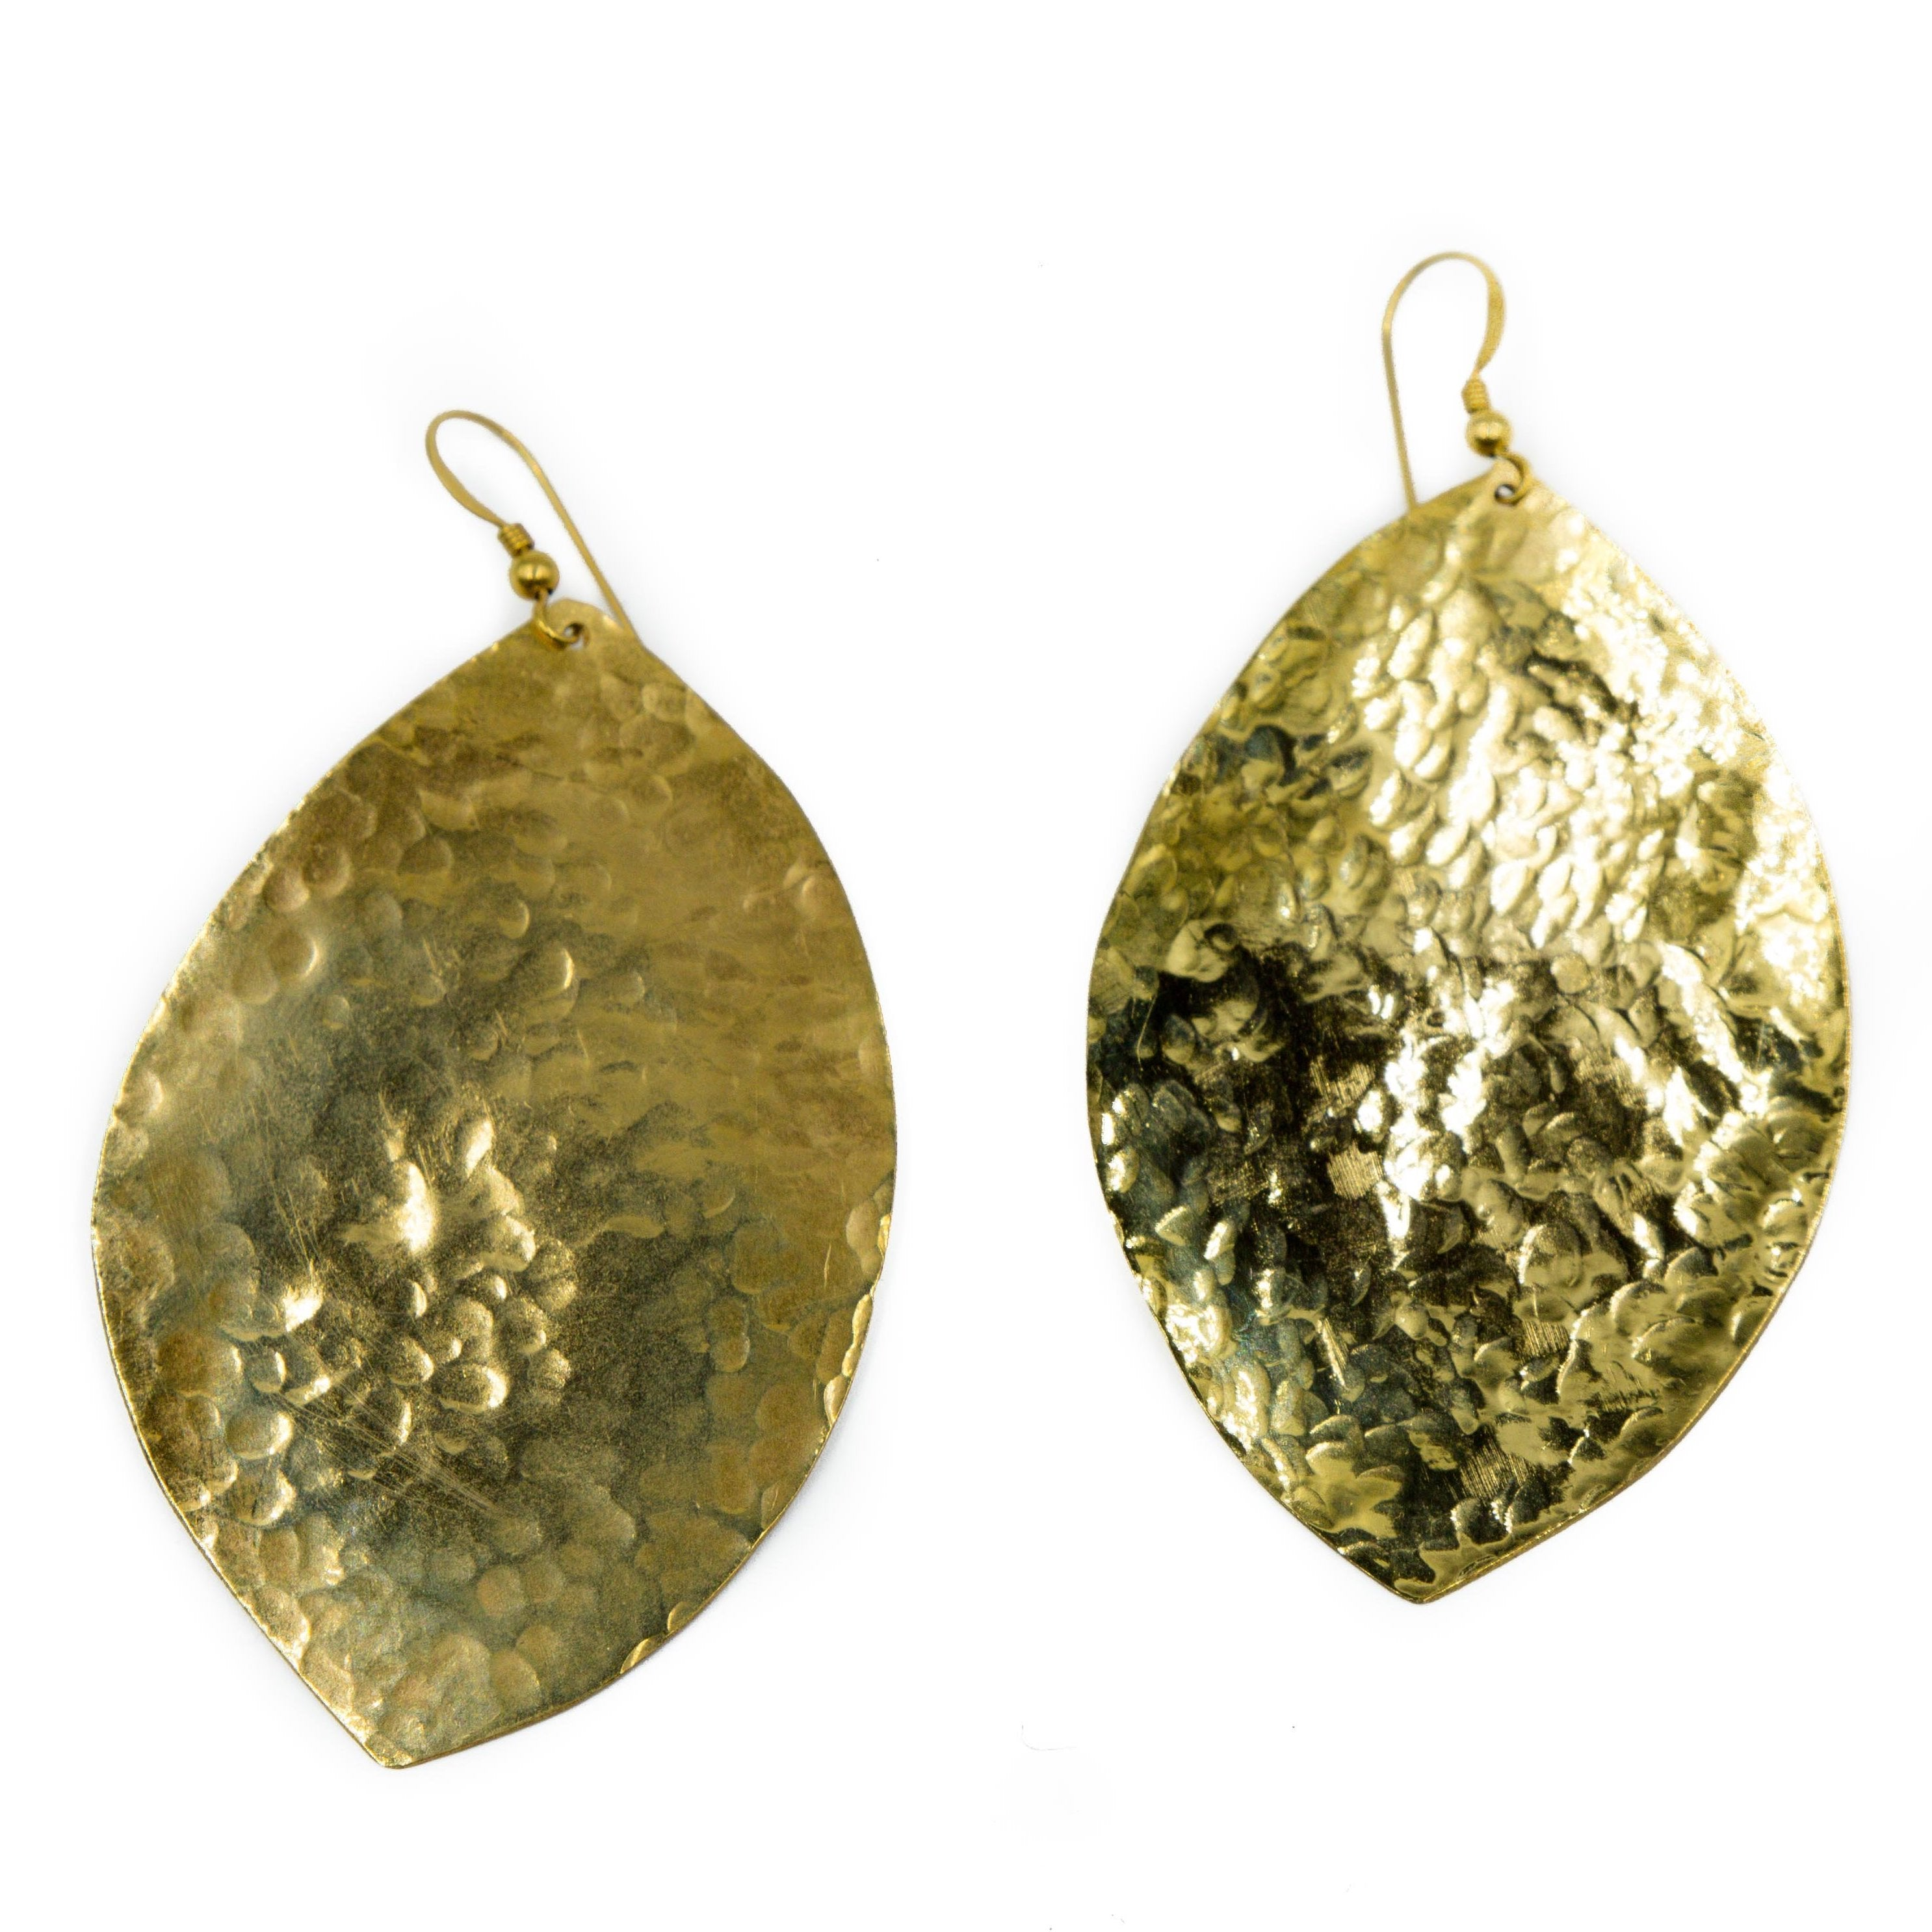 Earrings - Leaf